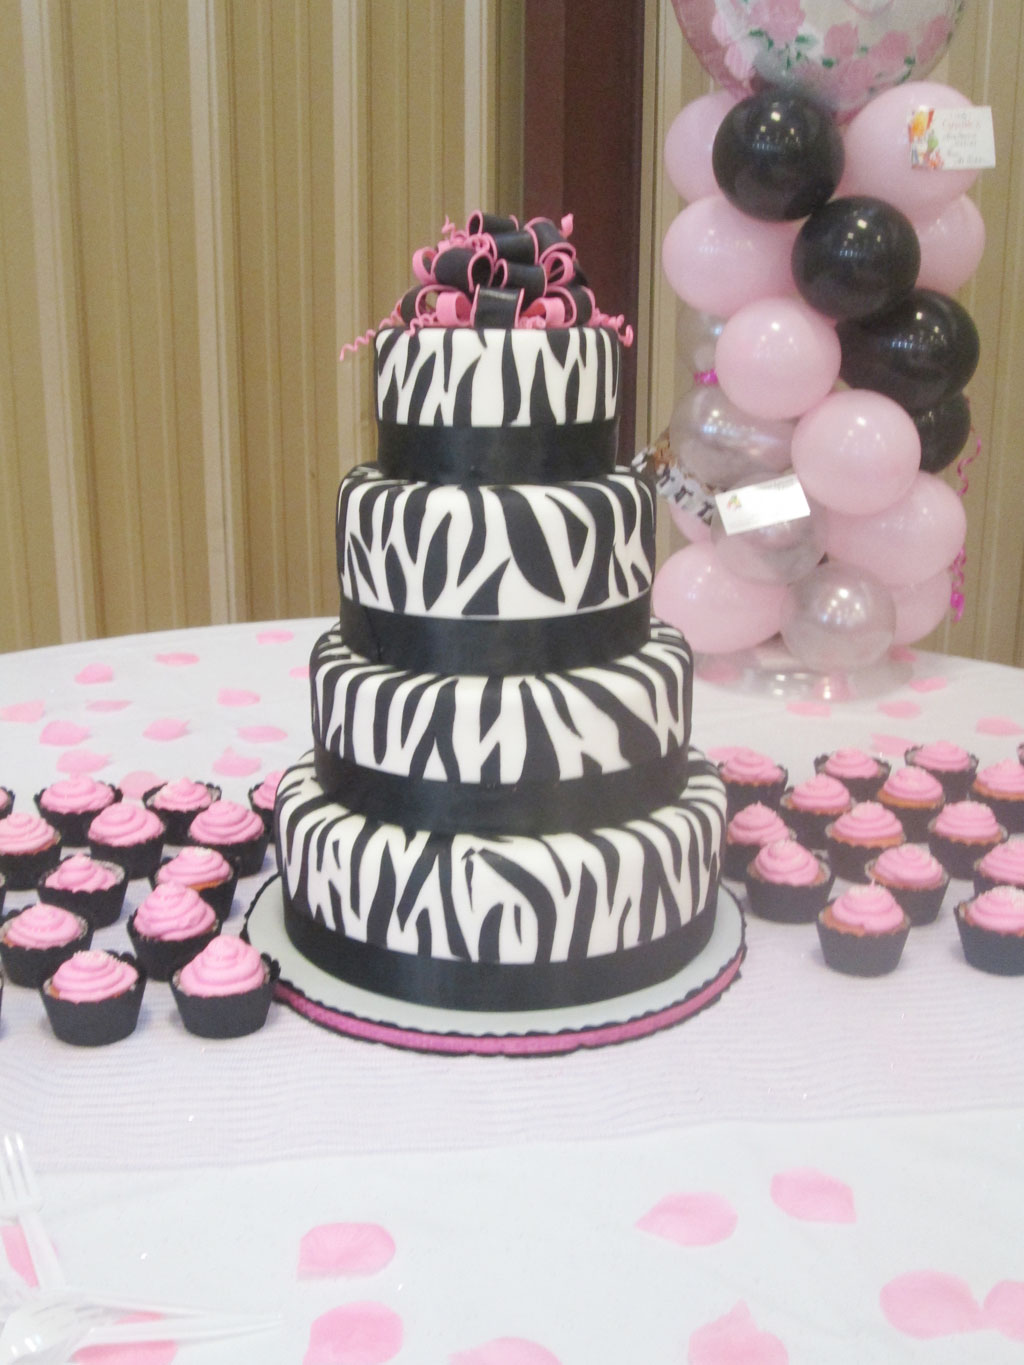 Zebra Print Birthday Cakes Ideas Birthday Cake Cake Ideas by